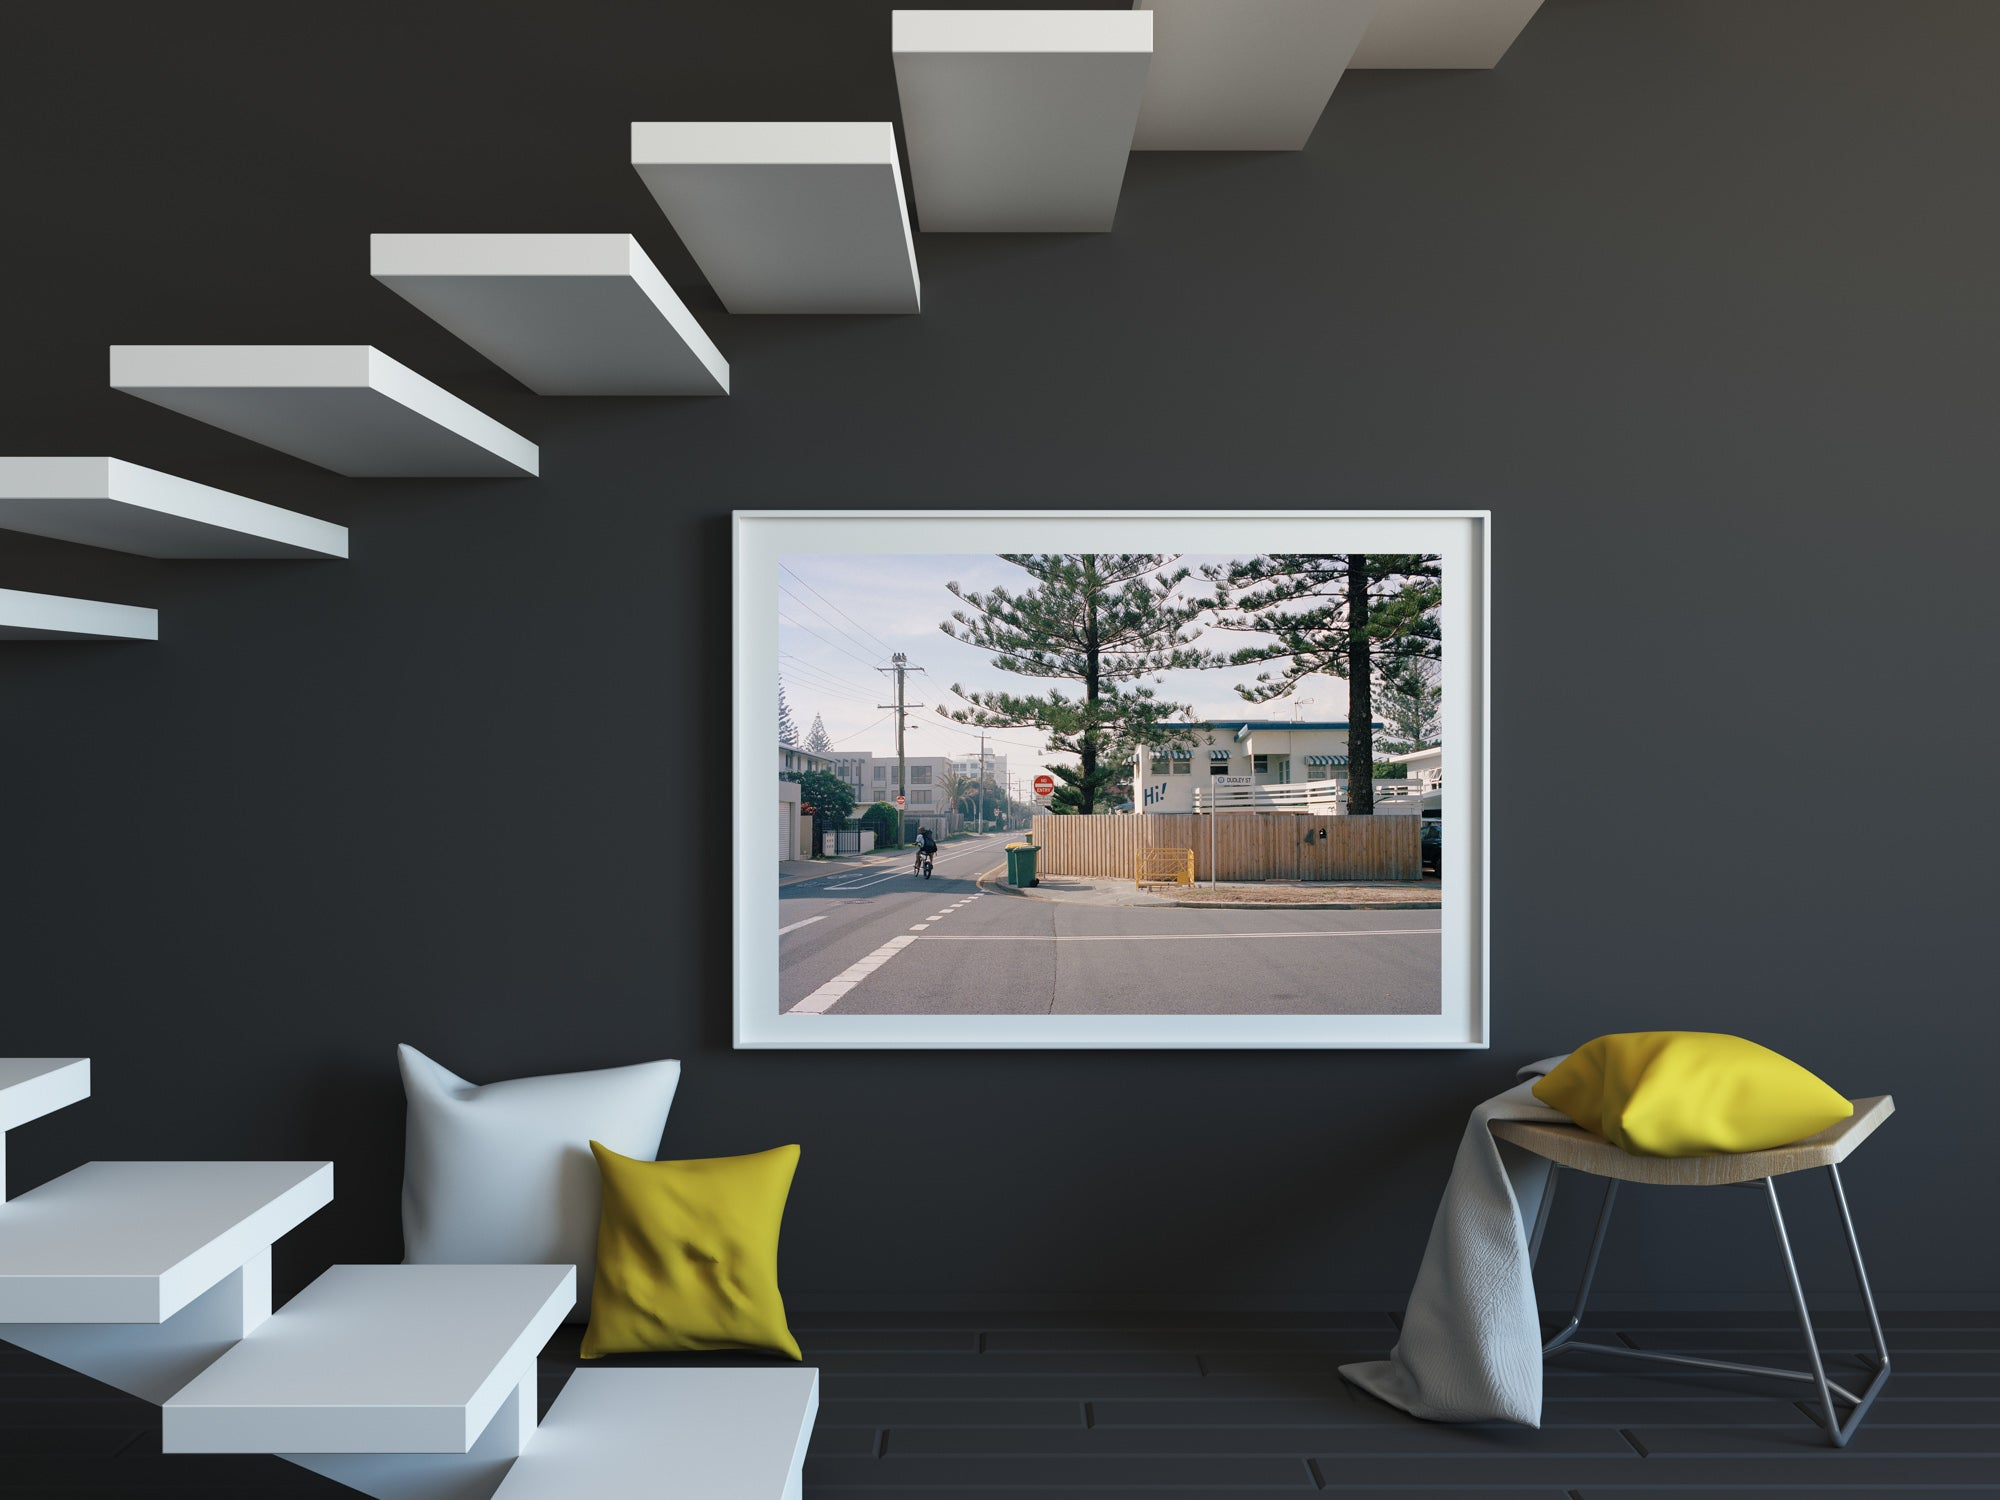 A colour photograph of an old beach house on the corner of a quiet street near the beach on the Goldcoast of Australia. There is a young man on his push bike on the street riding. Artwork Prints, wall art, Melbourne travel, Australia Photographic prints, Framed artwork, Australian Photography, Film photography, Vintage photo, style Interior design, Pictures, Abstract, film photography, photography for sale, music festival, architecture, gold coast, architecture, urban photography,